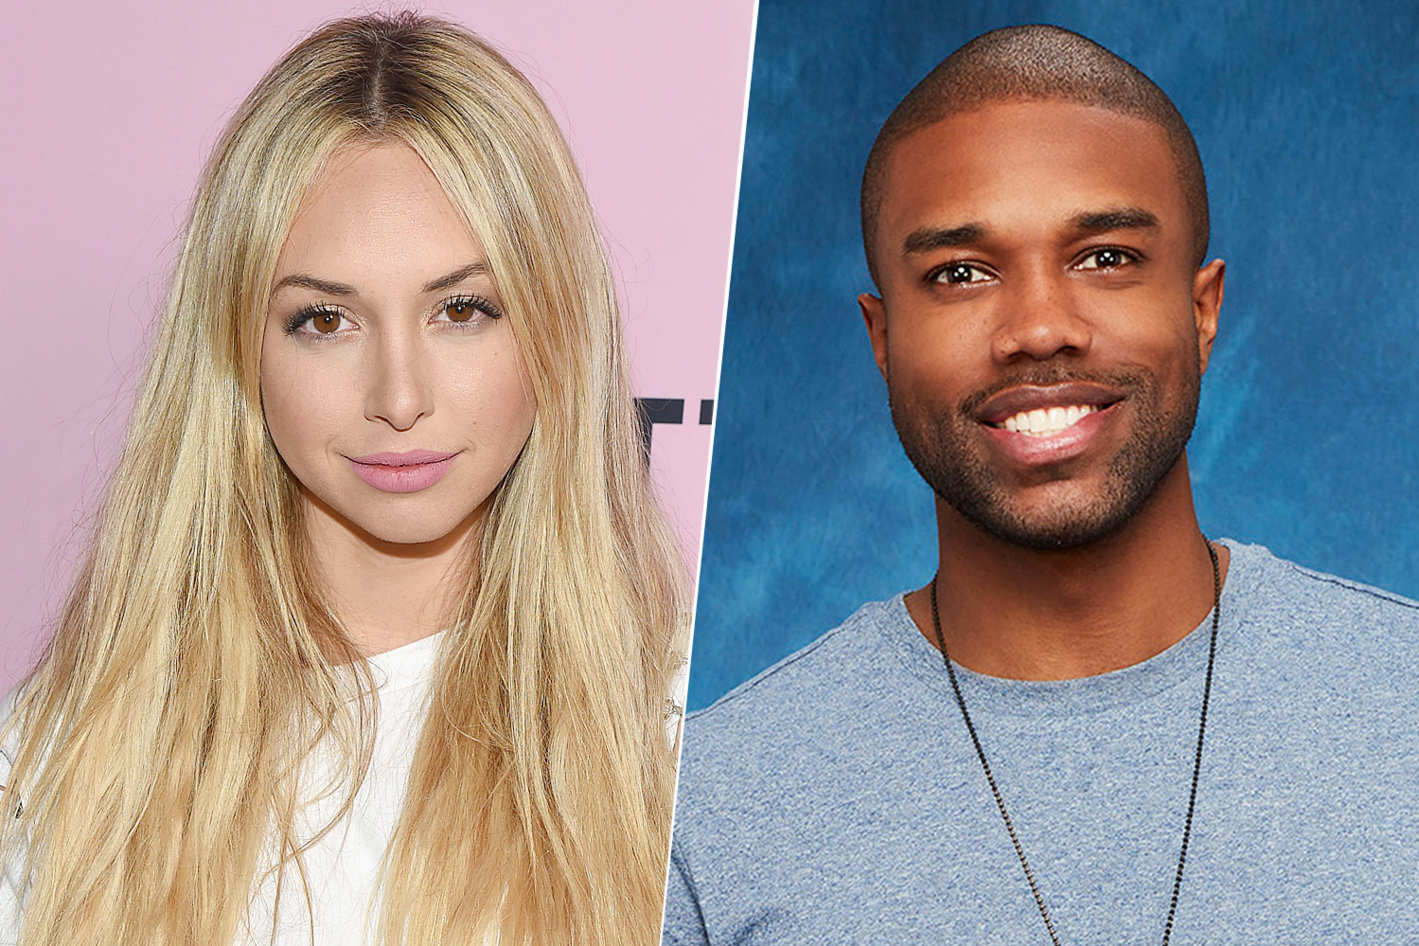 bachelor-in-paradise-stars-corinne-olympios-and-demario-jackson-break-silence